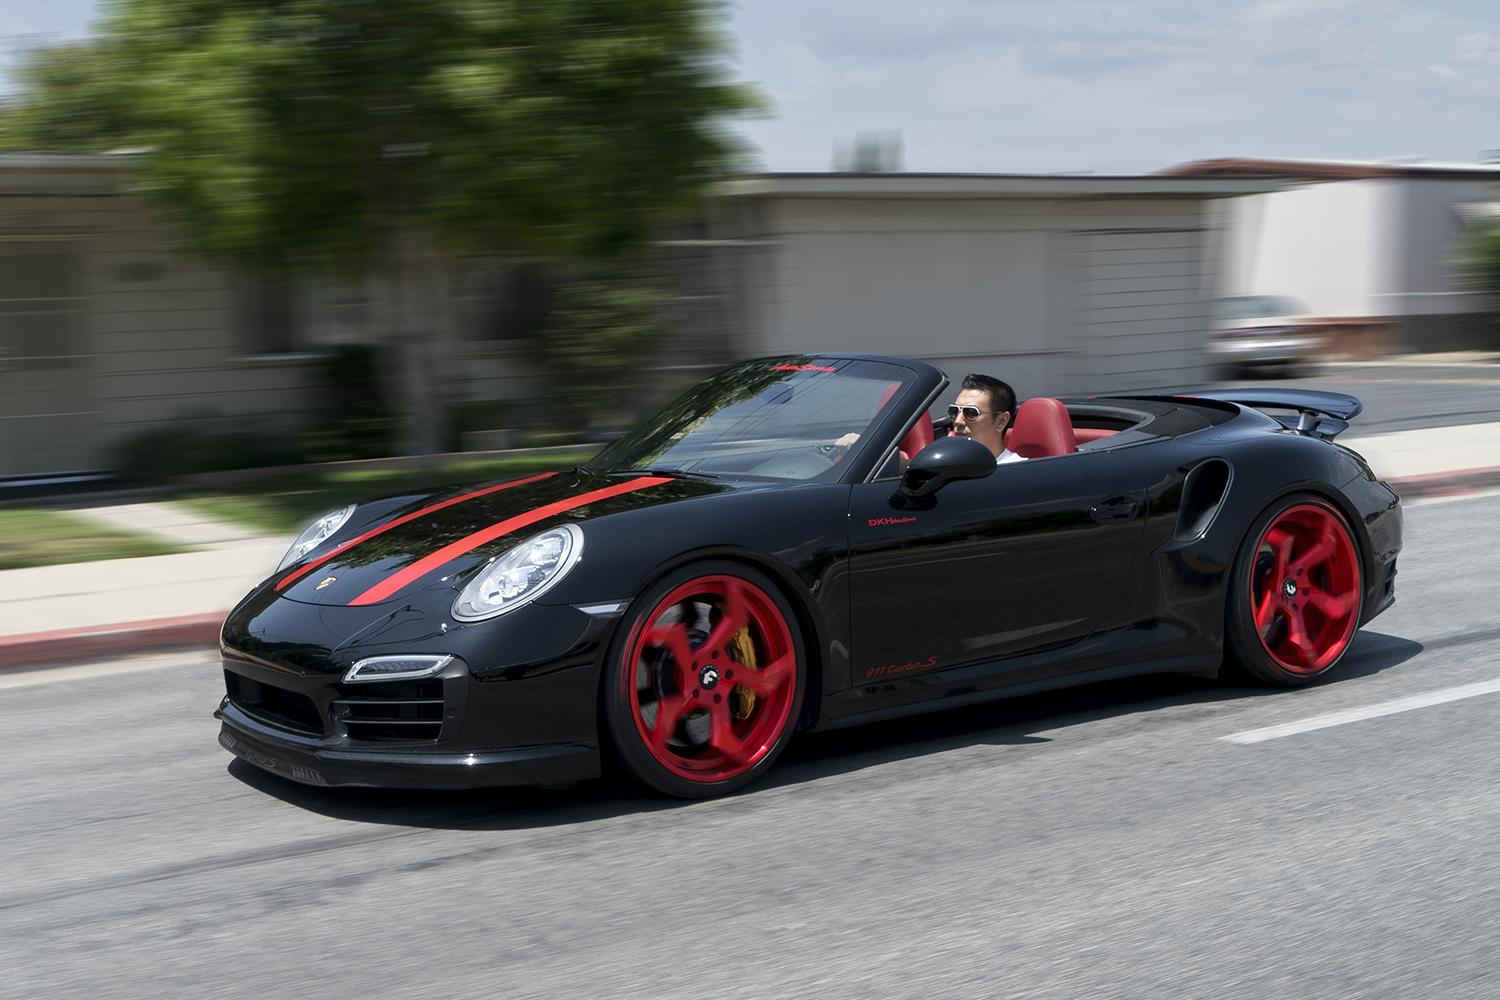 ninja style wheels come to the topless porsche 911 turbo s. Black Bedroom Furniture Sets. Home Design Ideas